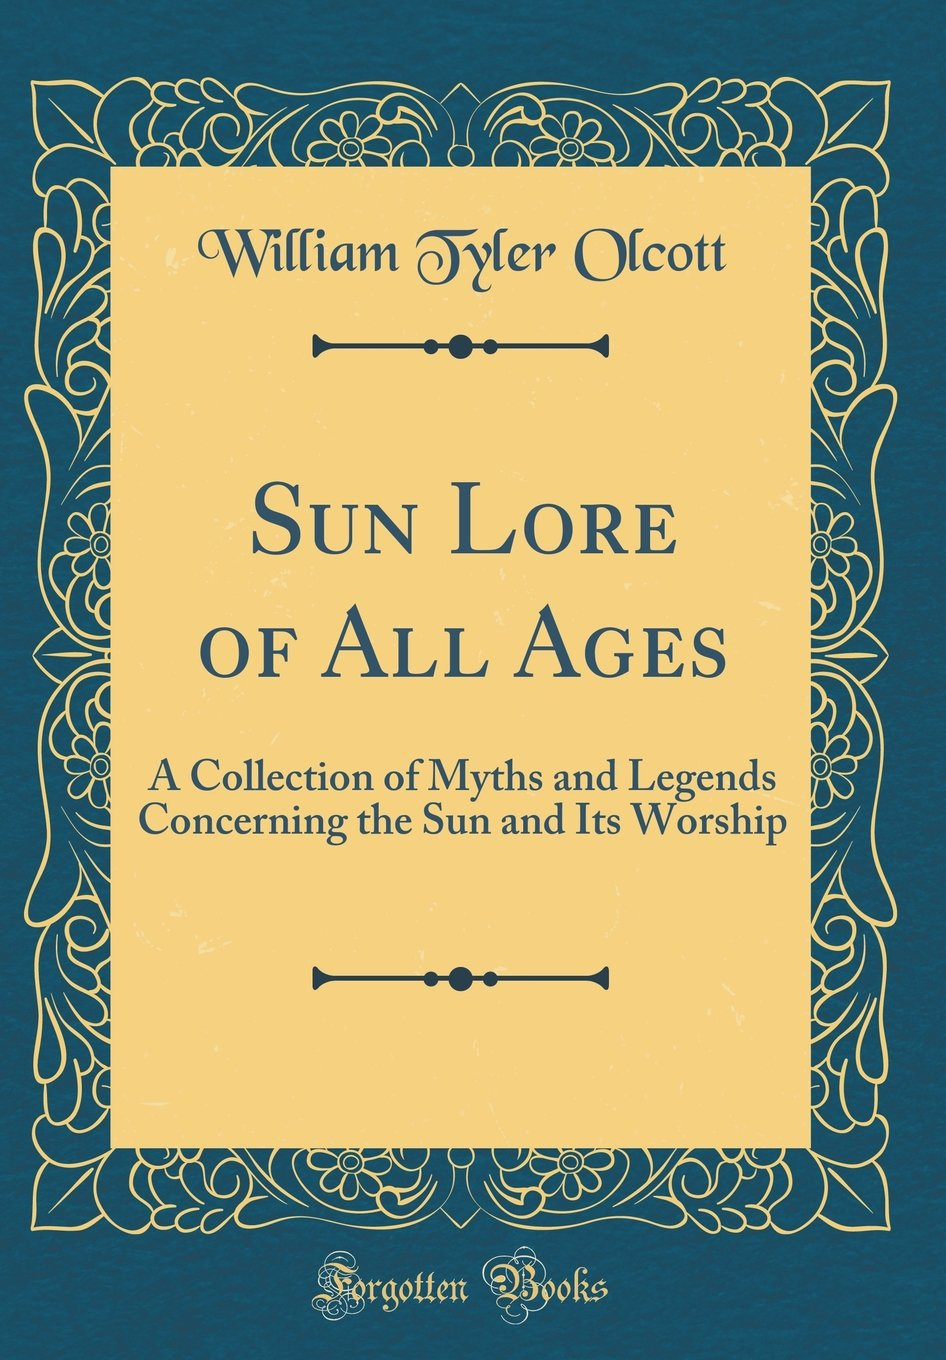 Sun lore of all ages : a collection of myths and legends concerning the sun and its worship